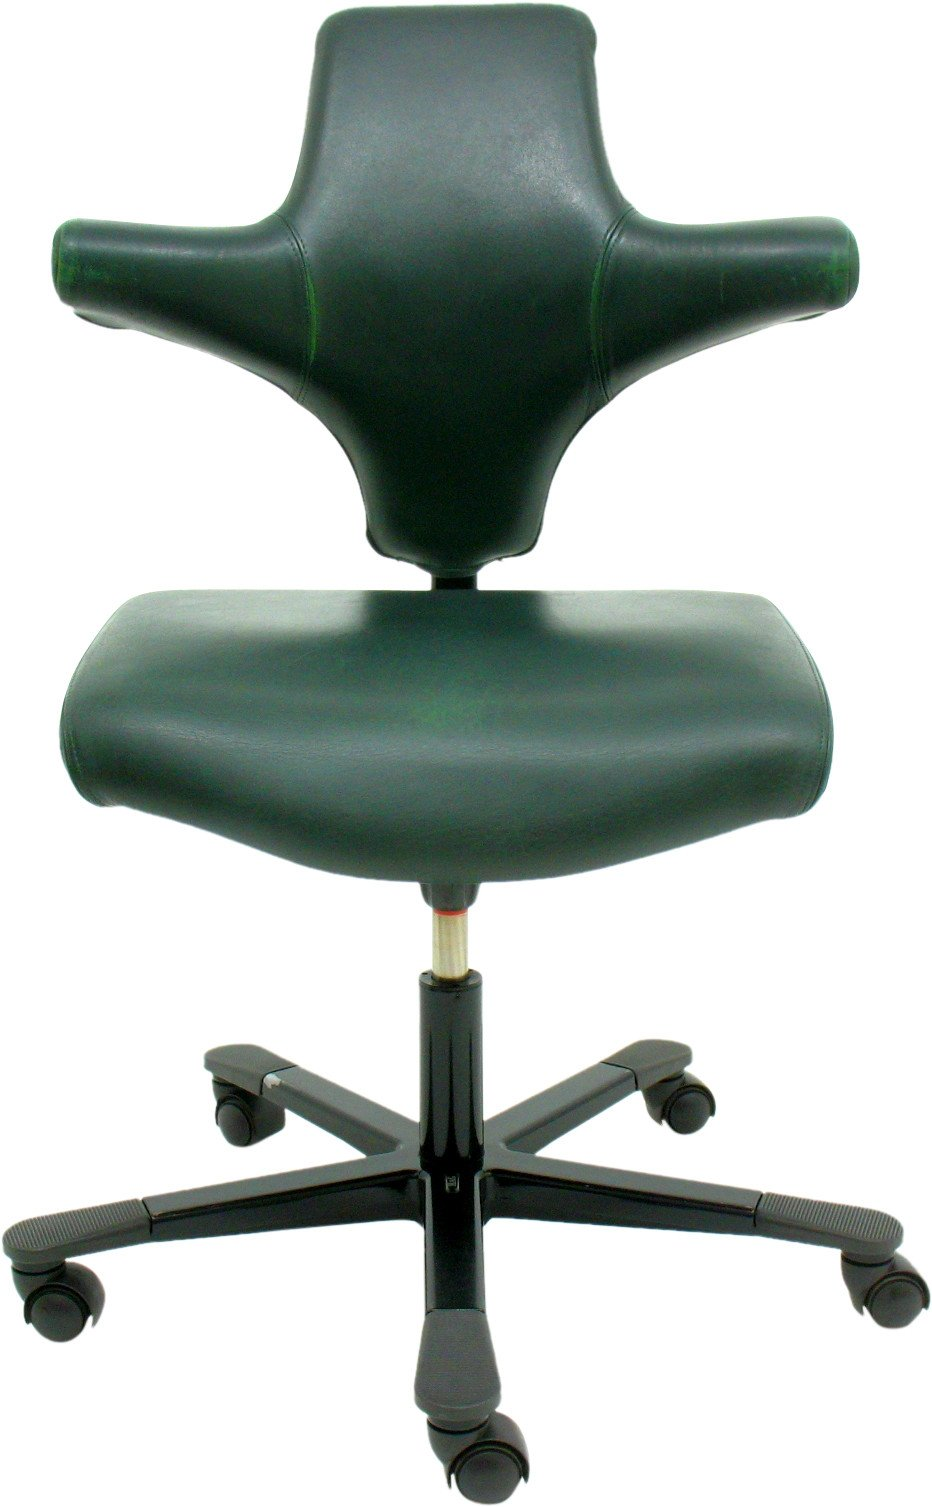 Office Chair Capisco by P. Opsvik for Hag, Norway, 1990s